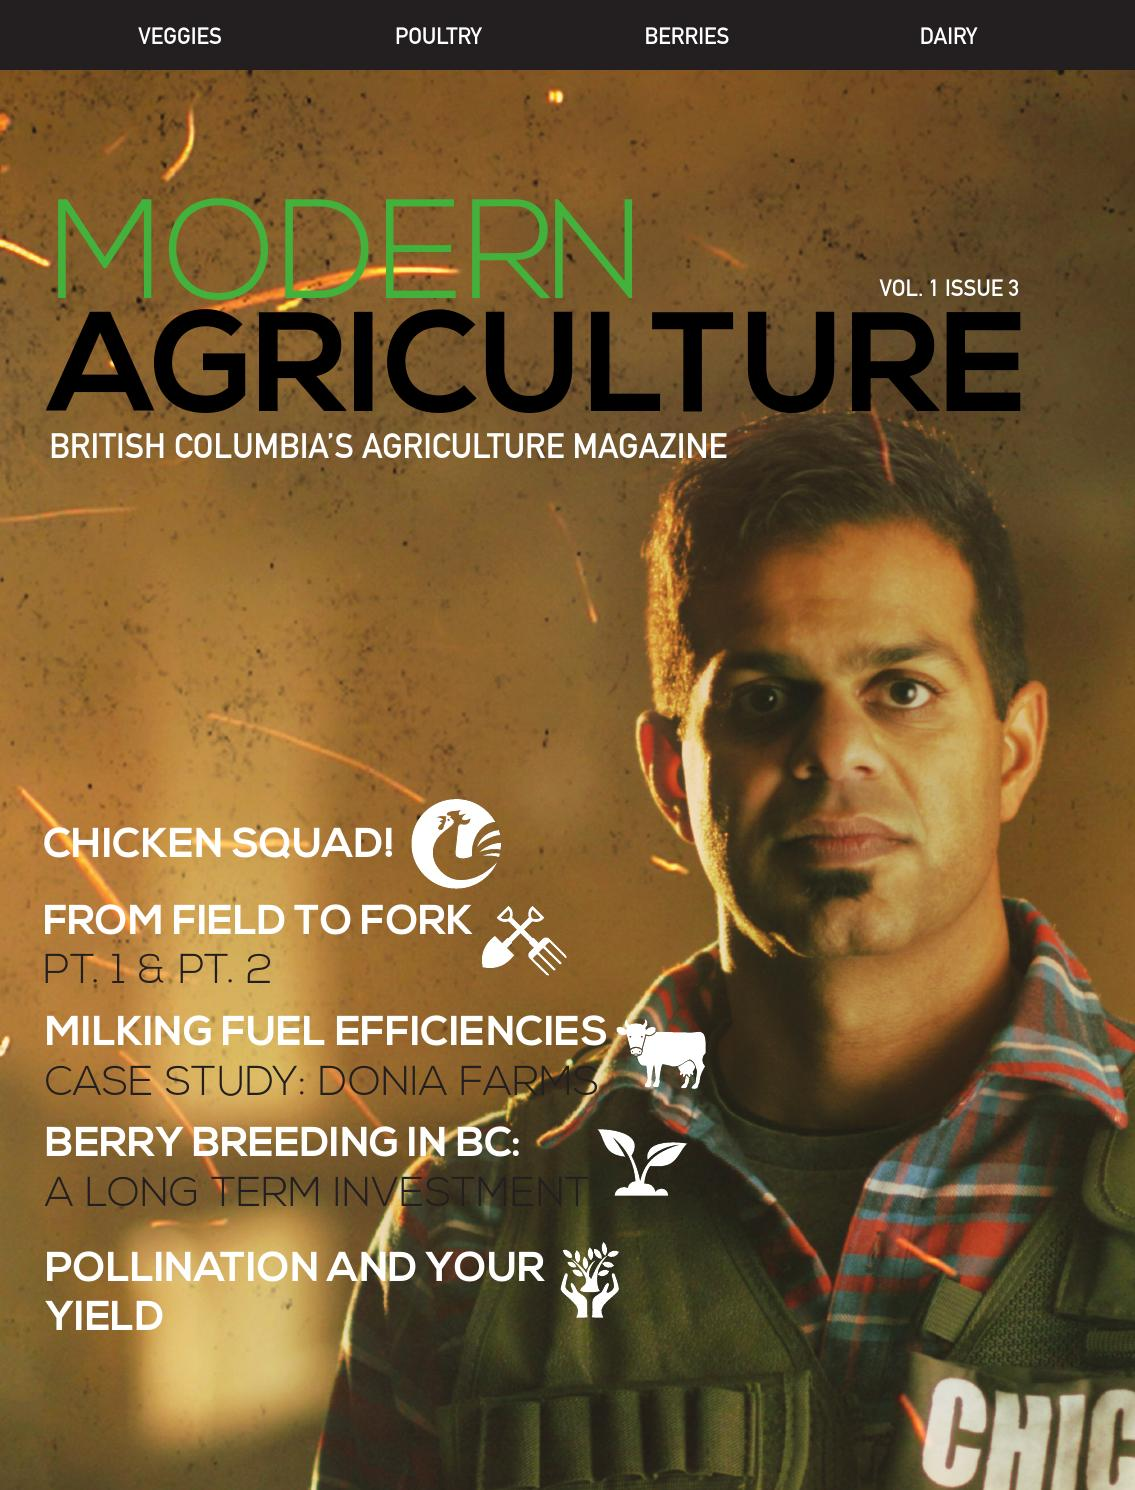 Modern Agriculture Magazine Volume 1 Issue 3 by Modern Agriculture